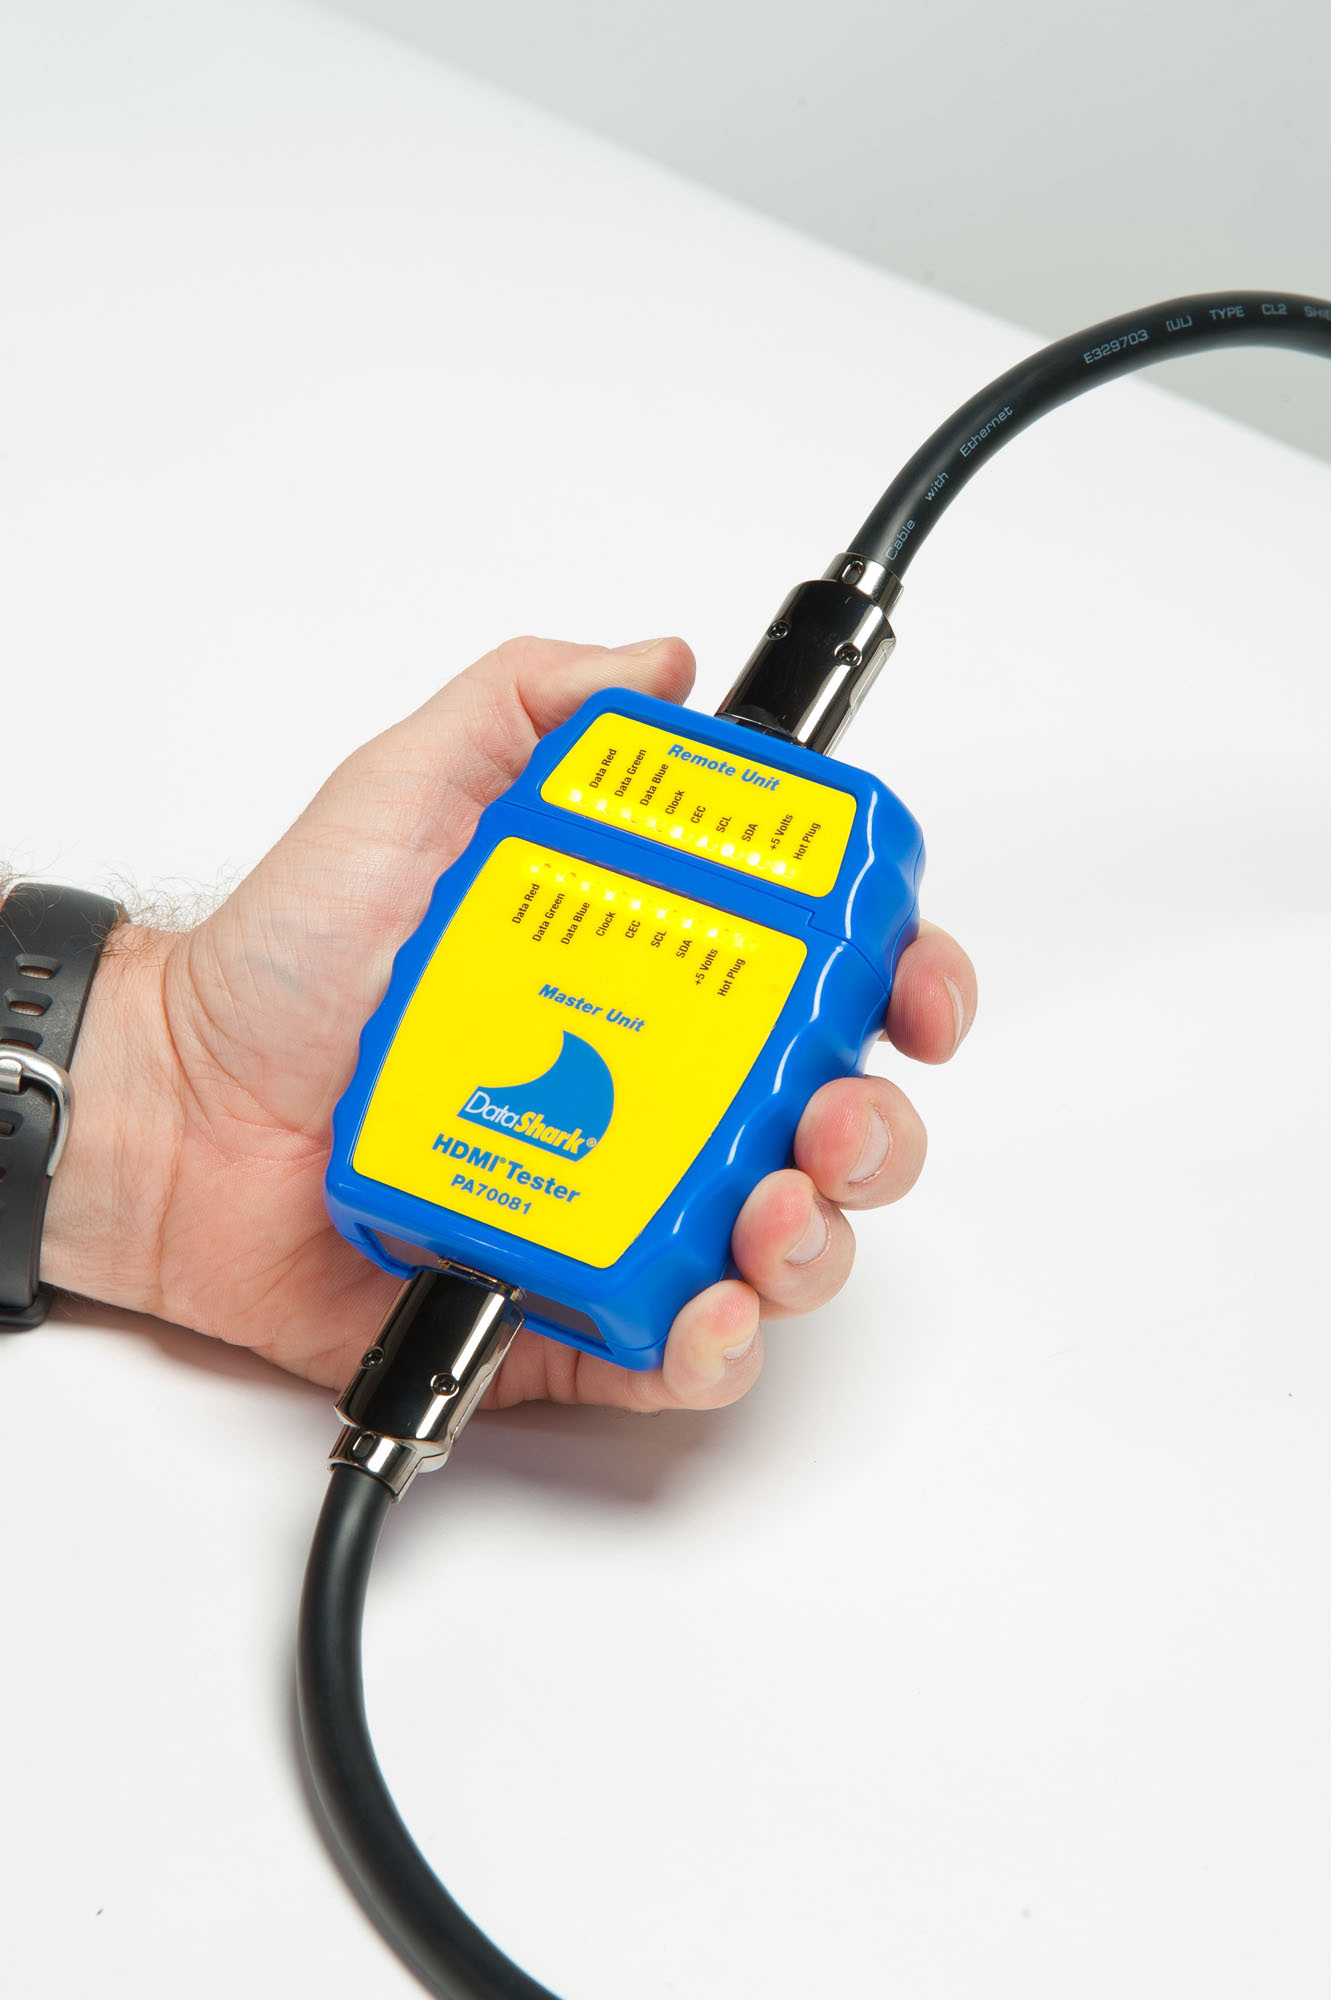 Data Cable Tester : Greenlee pa data shark hdmi cable tester